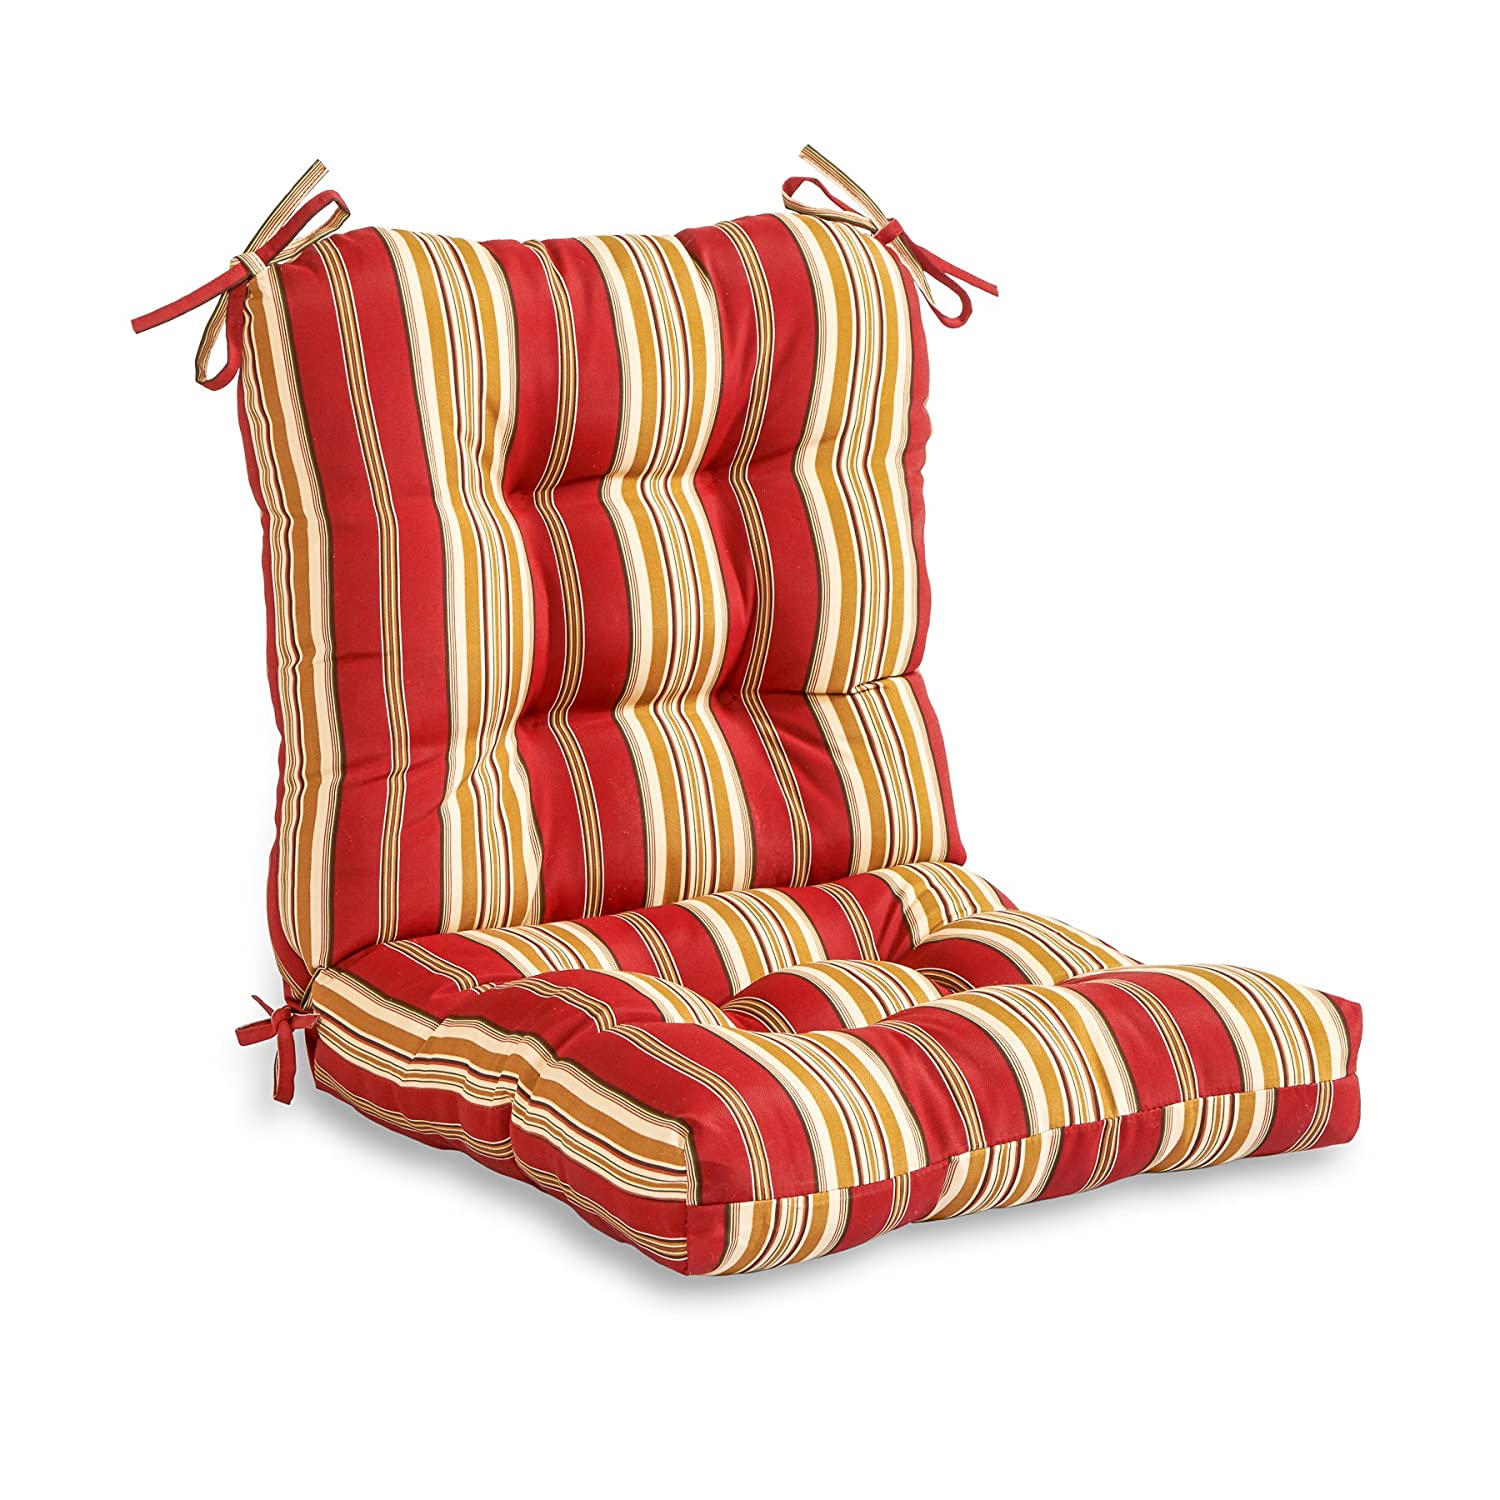 Greendale Home Fashions Outdoor Seat/Back Chair Cushion, Roma Stripe - Patio Furniture Cushions Amazon.com